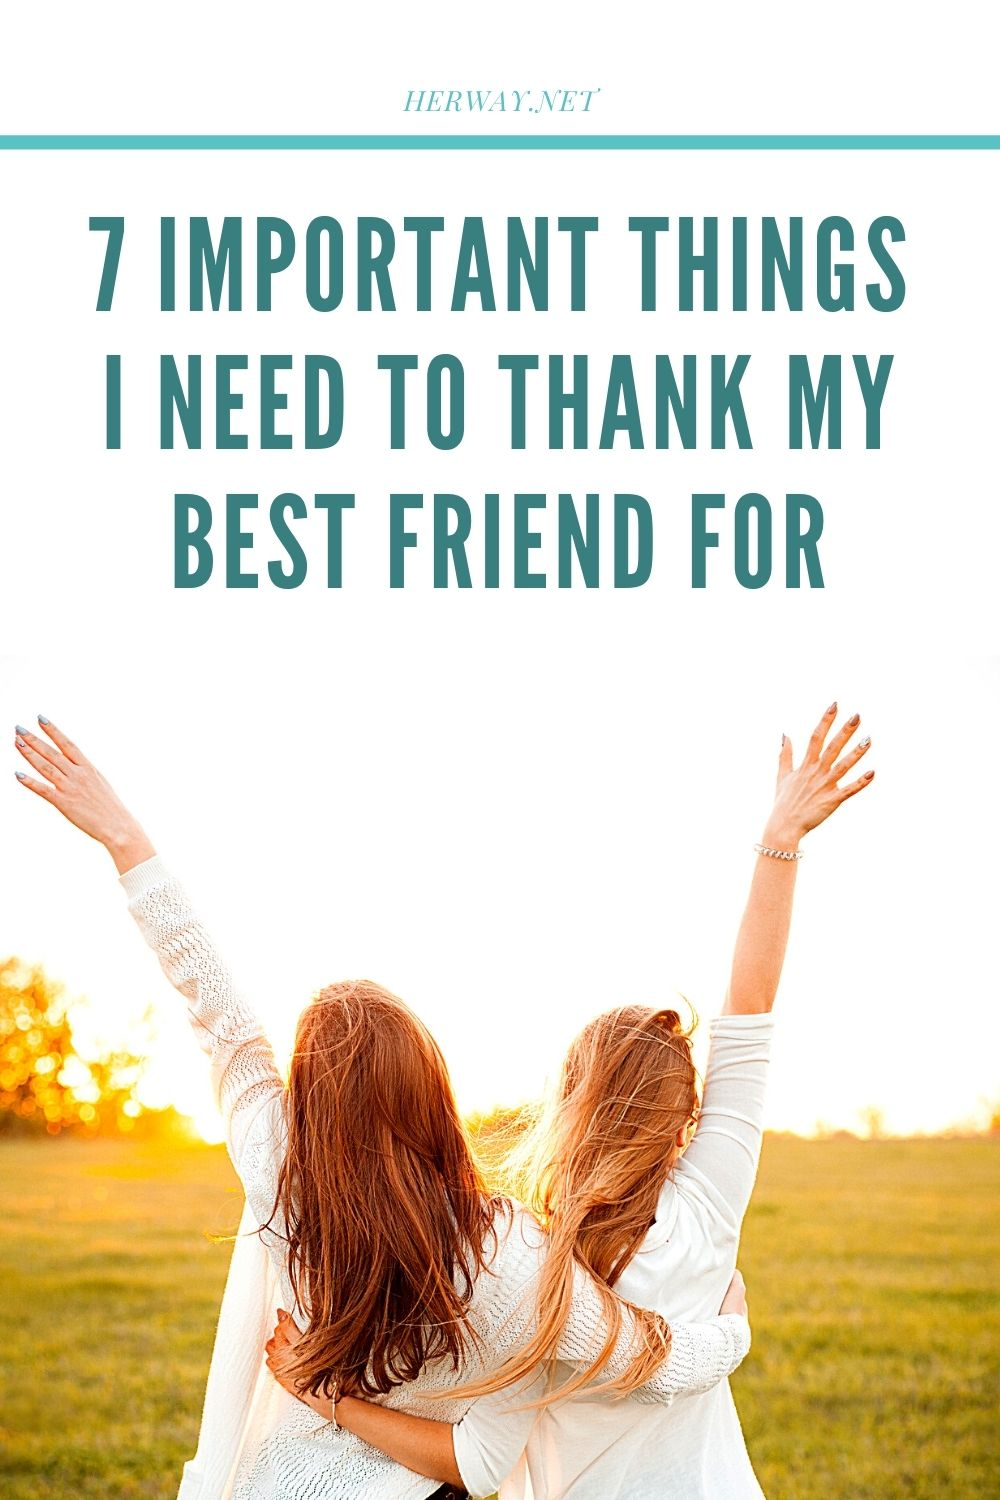 7 Important Things I Need To Thank My Best Friend For